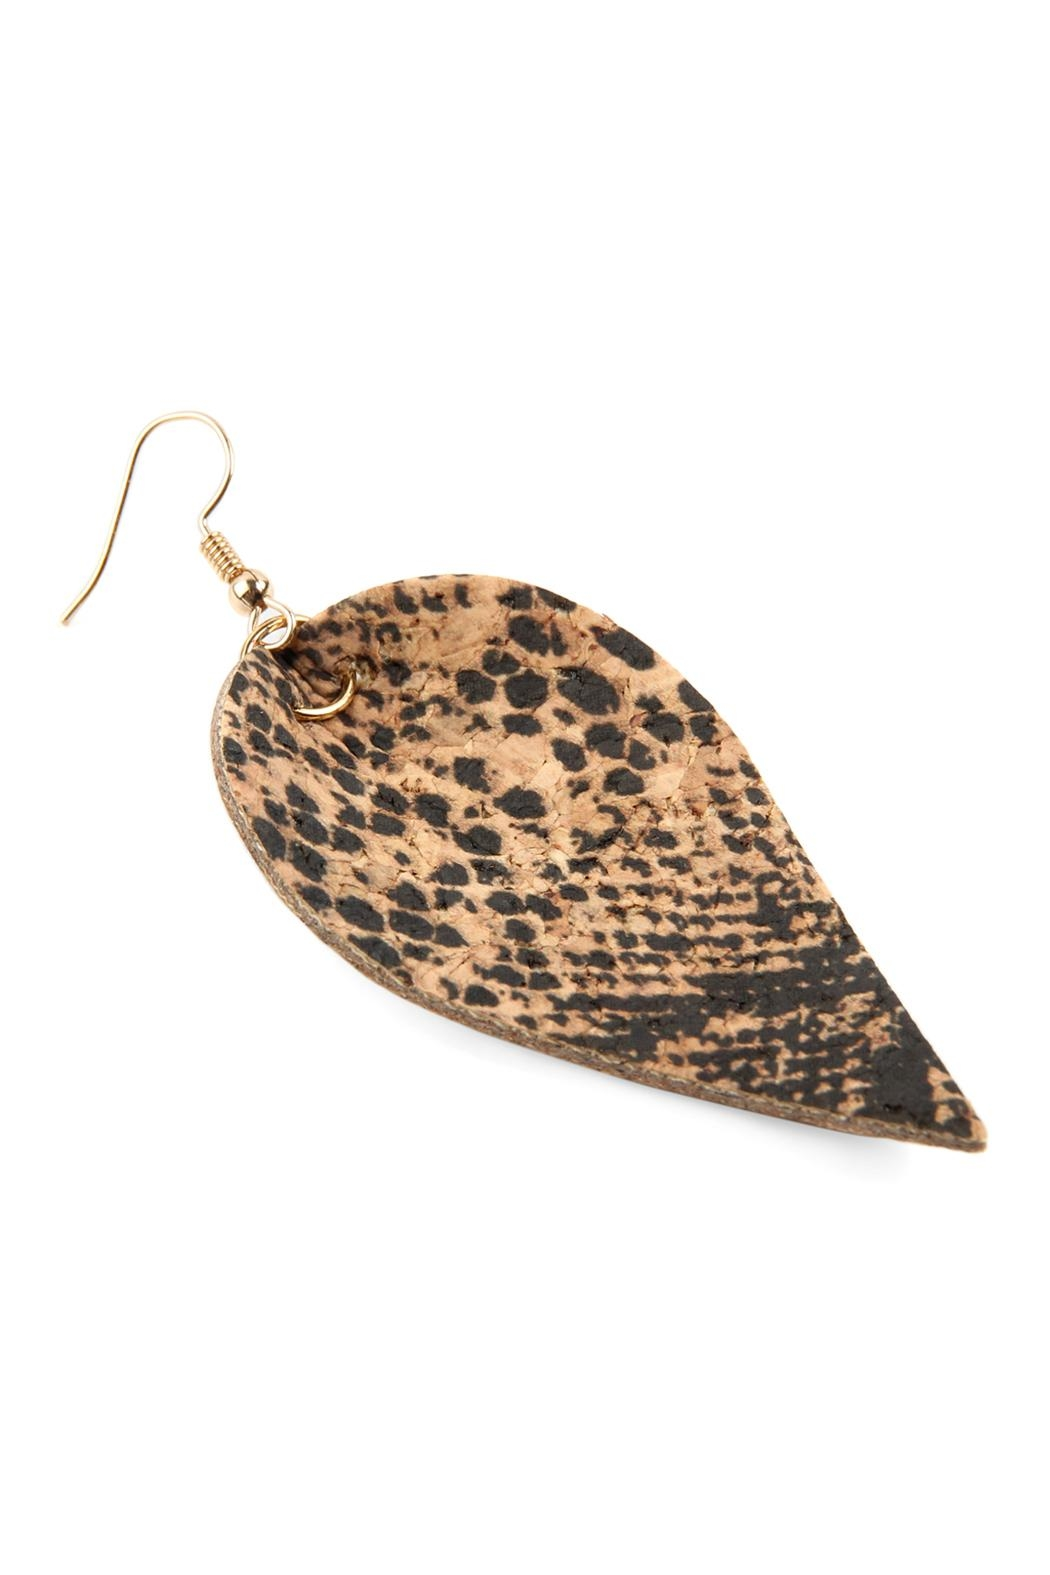 Riah Fashion Snake Skin-Leaf Shape-Cork-Earrings - Front Full Image